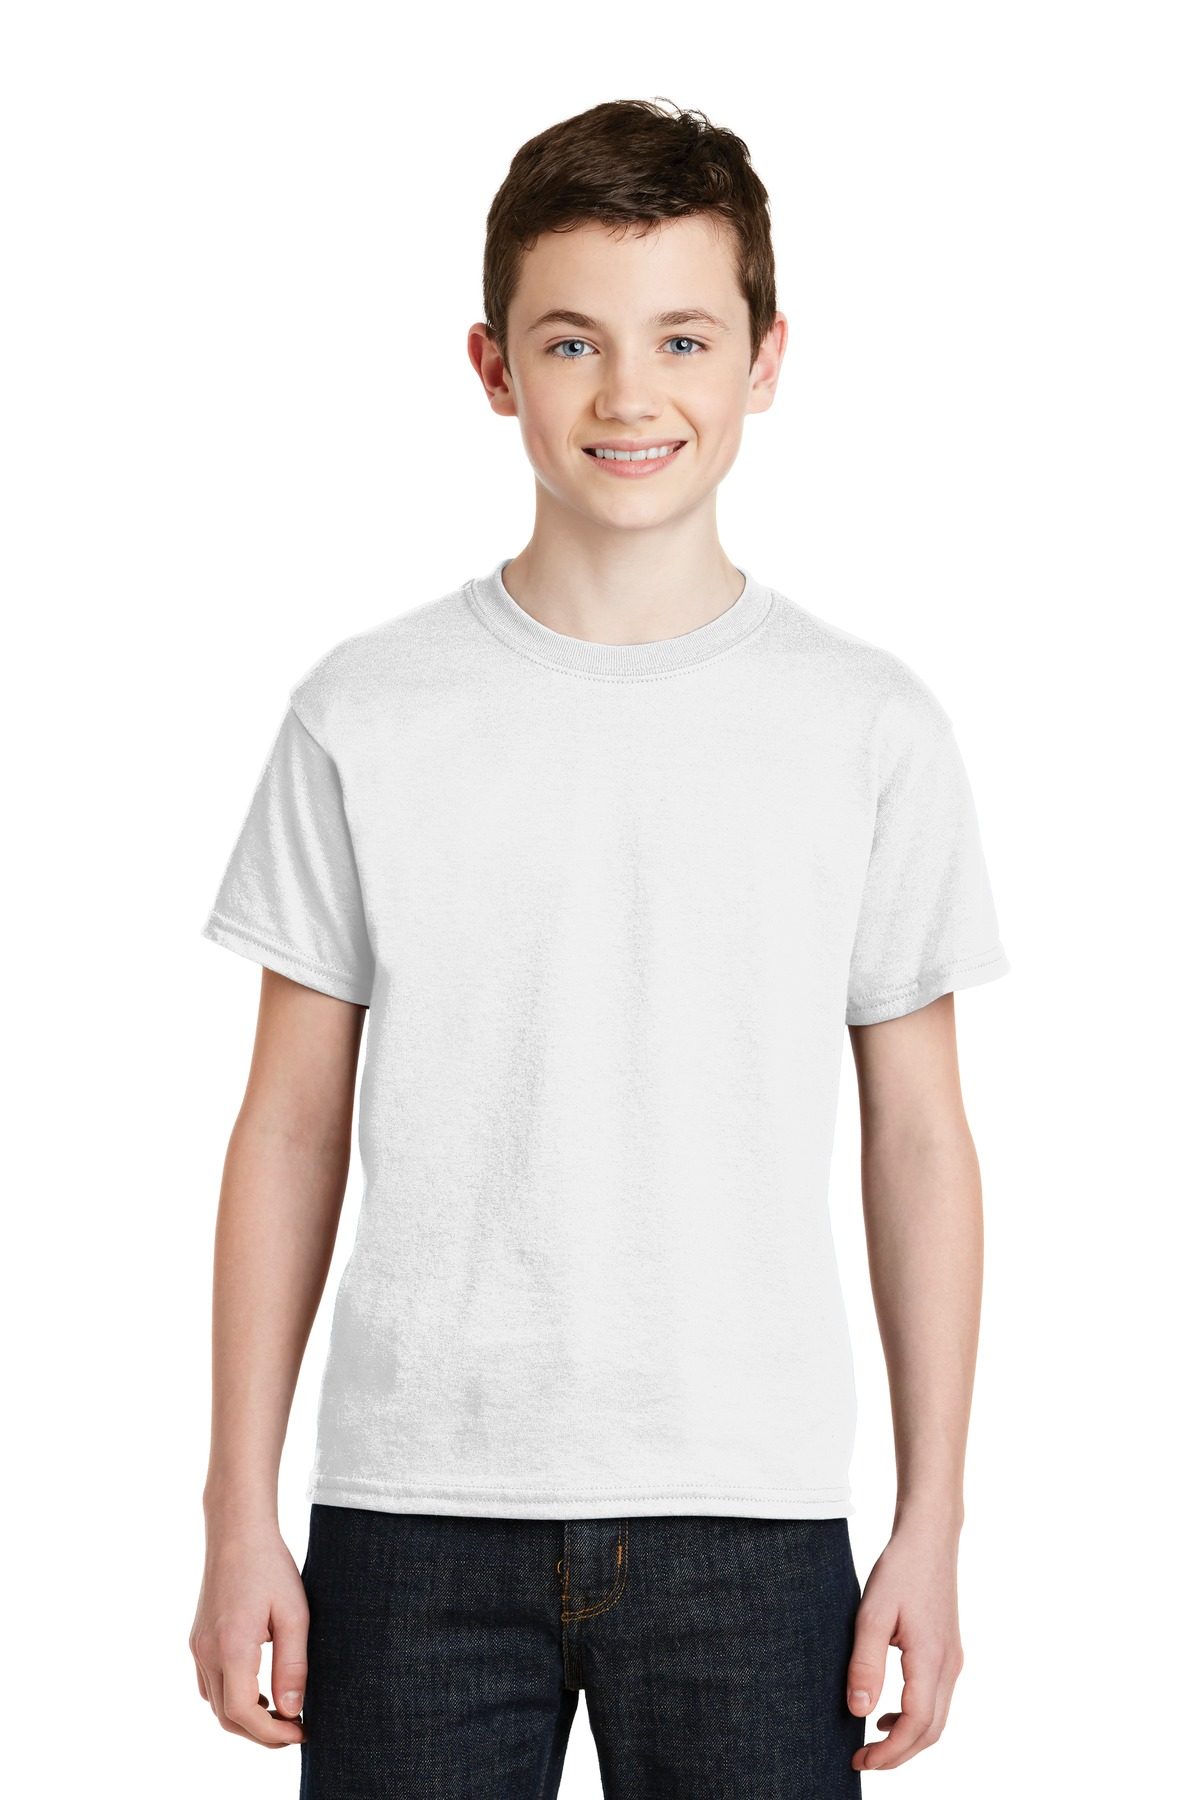 Gildan youth dryblend 50 cotton 50 poly t shirt for Gildan dryblend 50 cotton 50 poly t shirt 8000